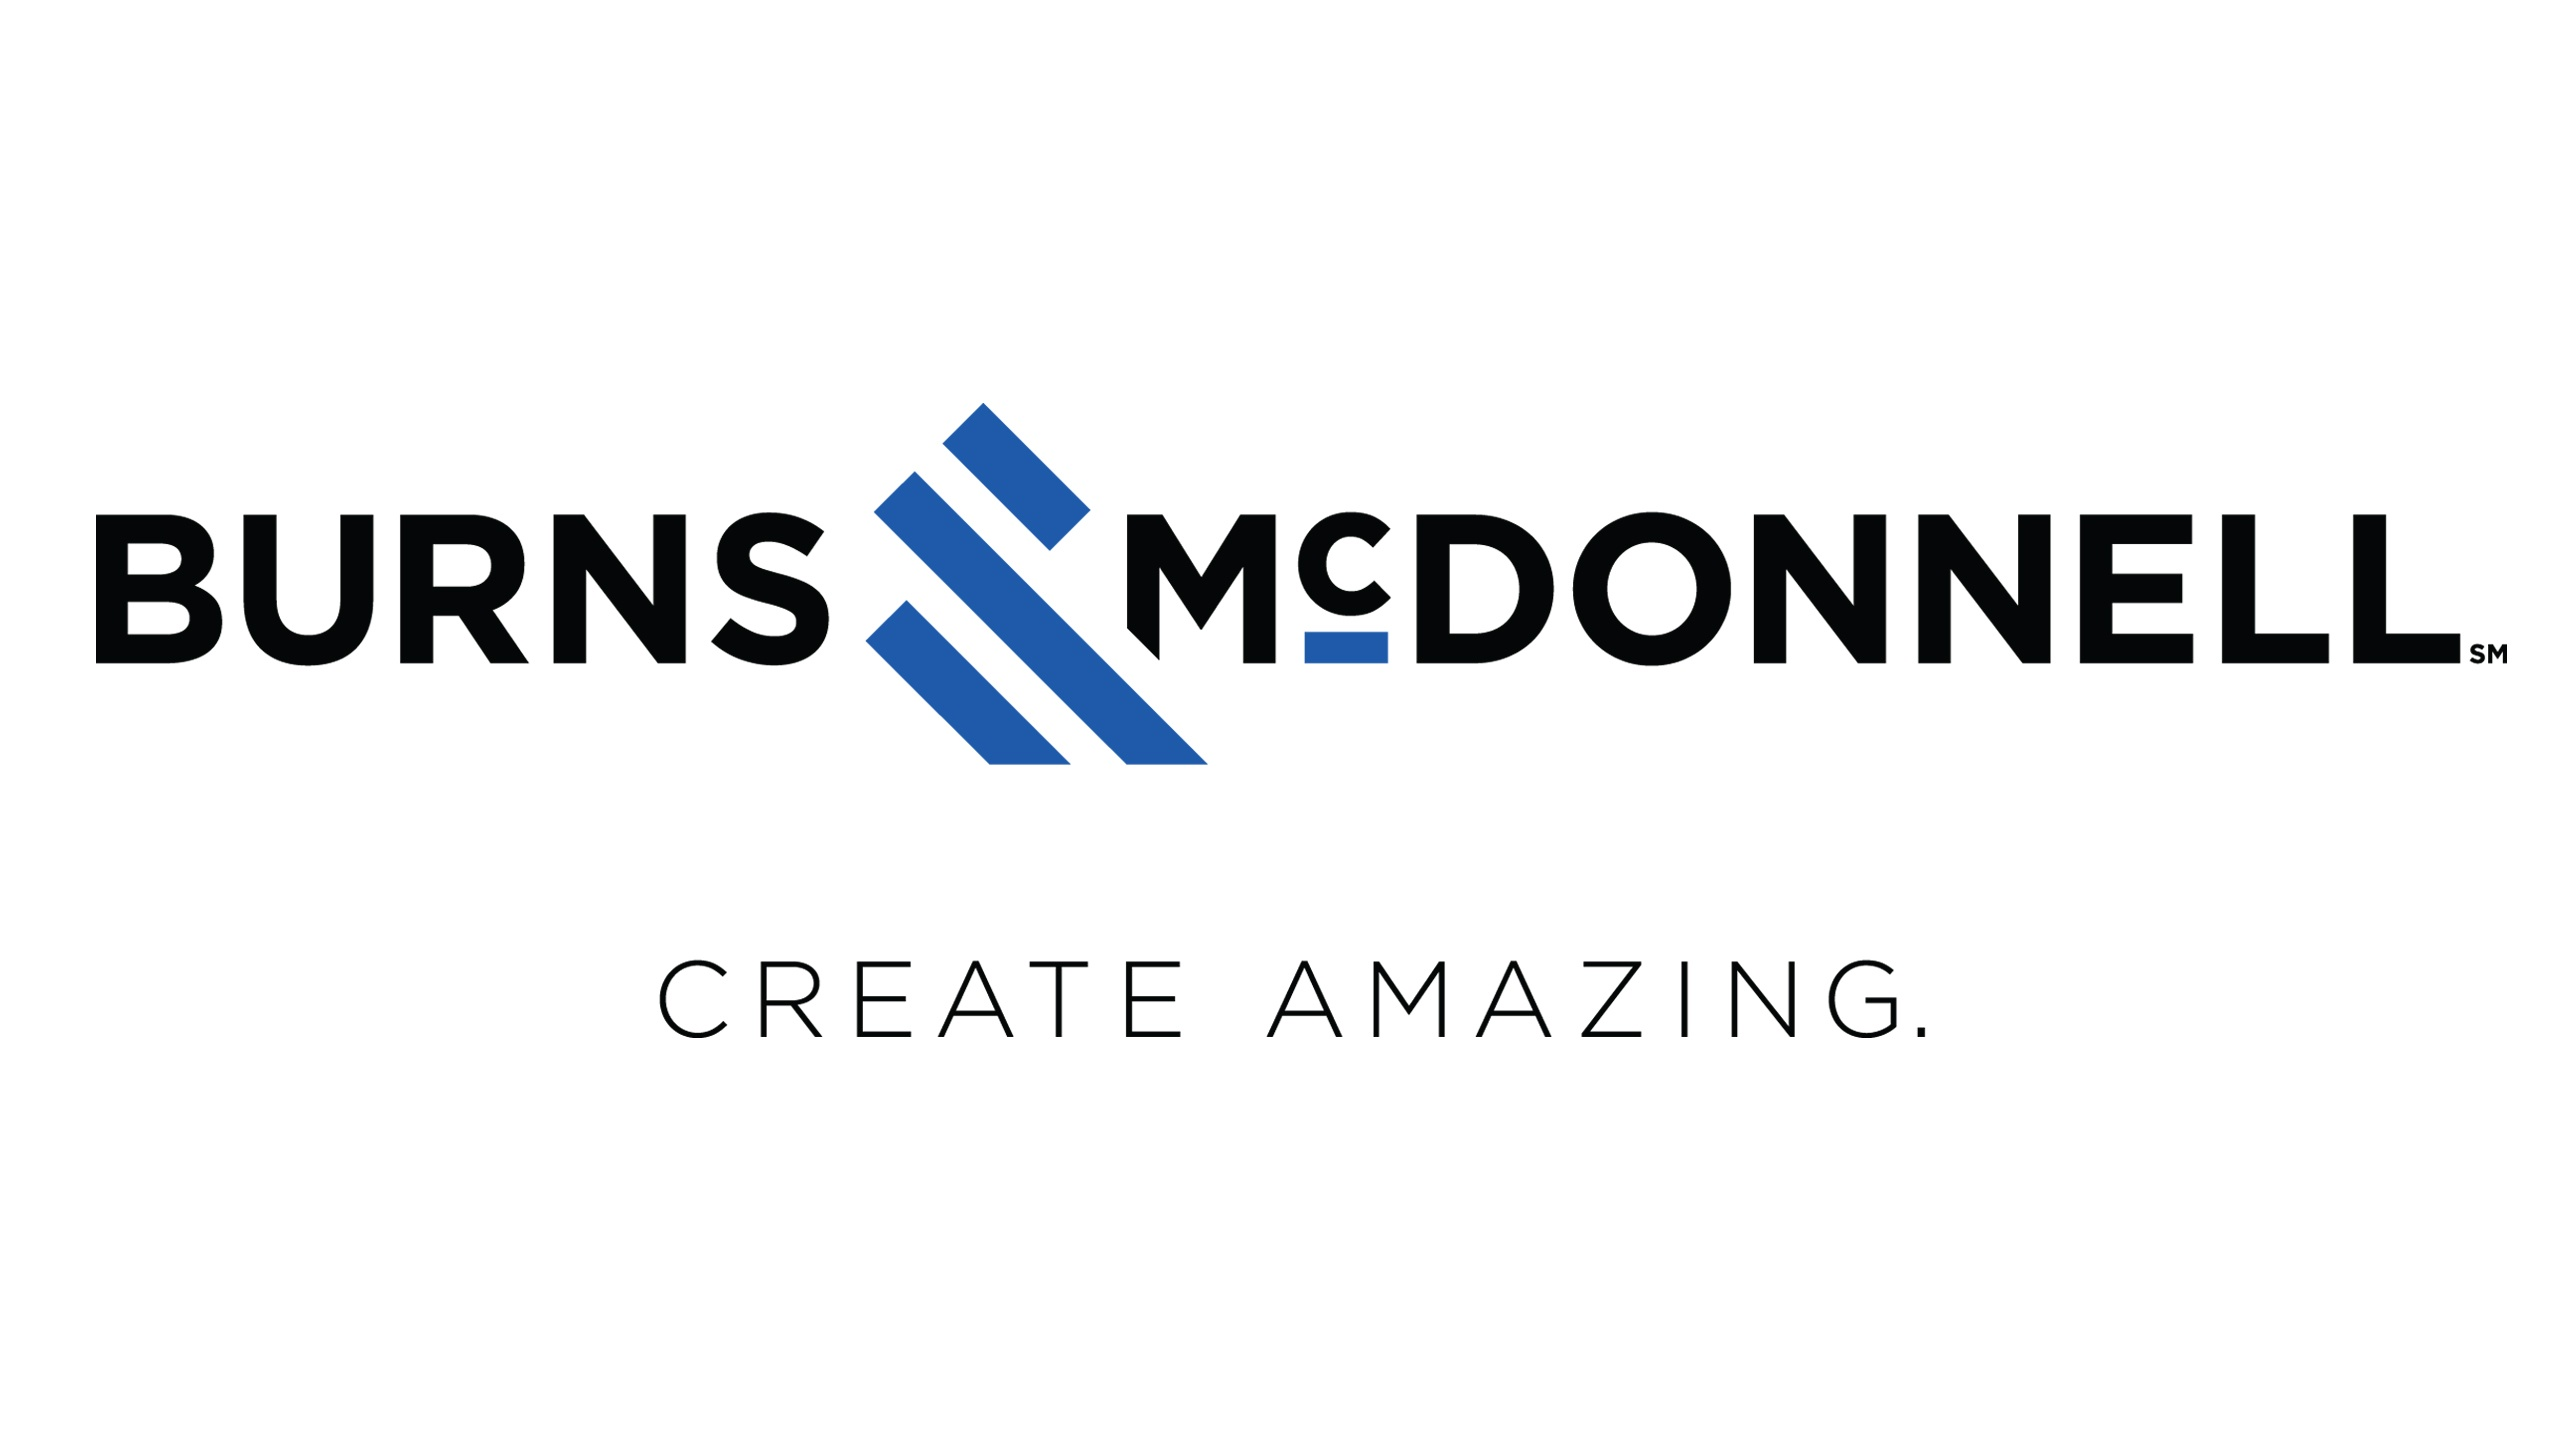 Burns & McDonnell logo